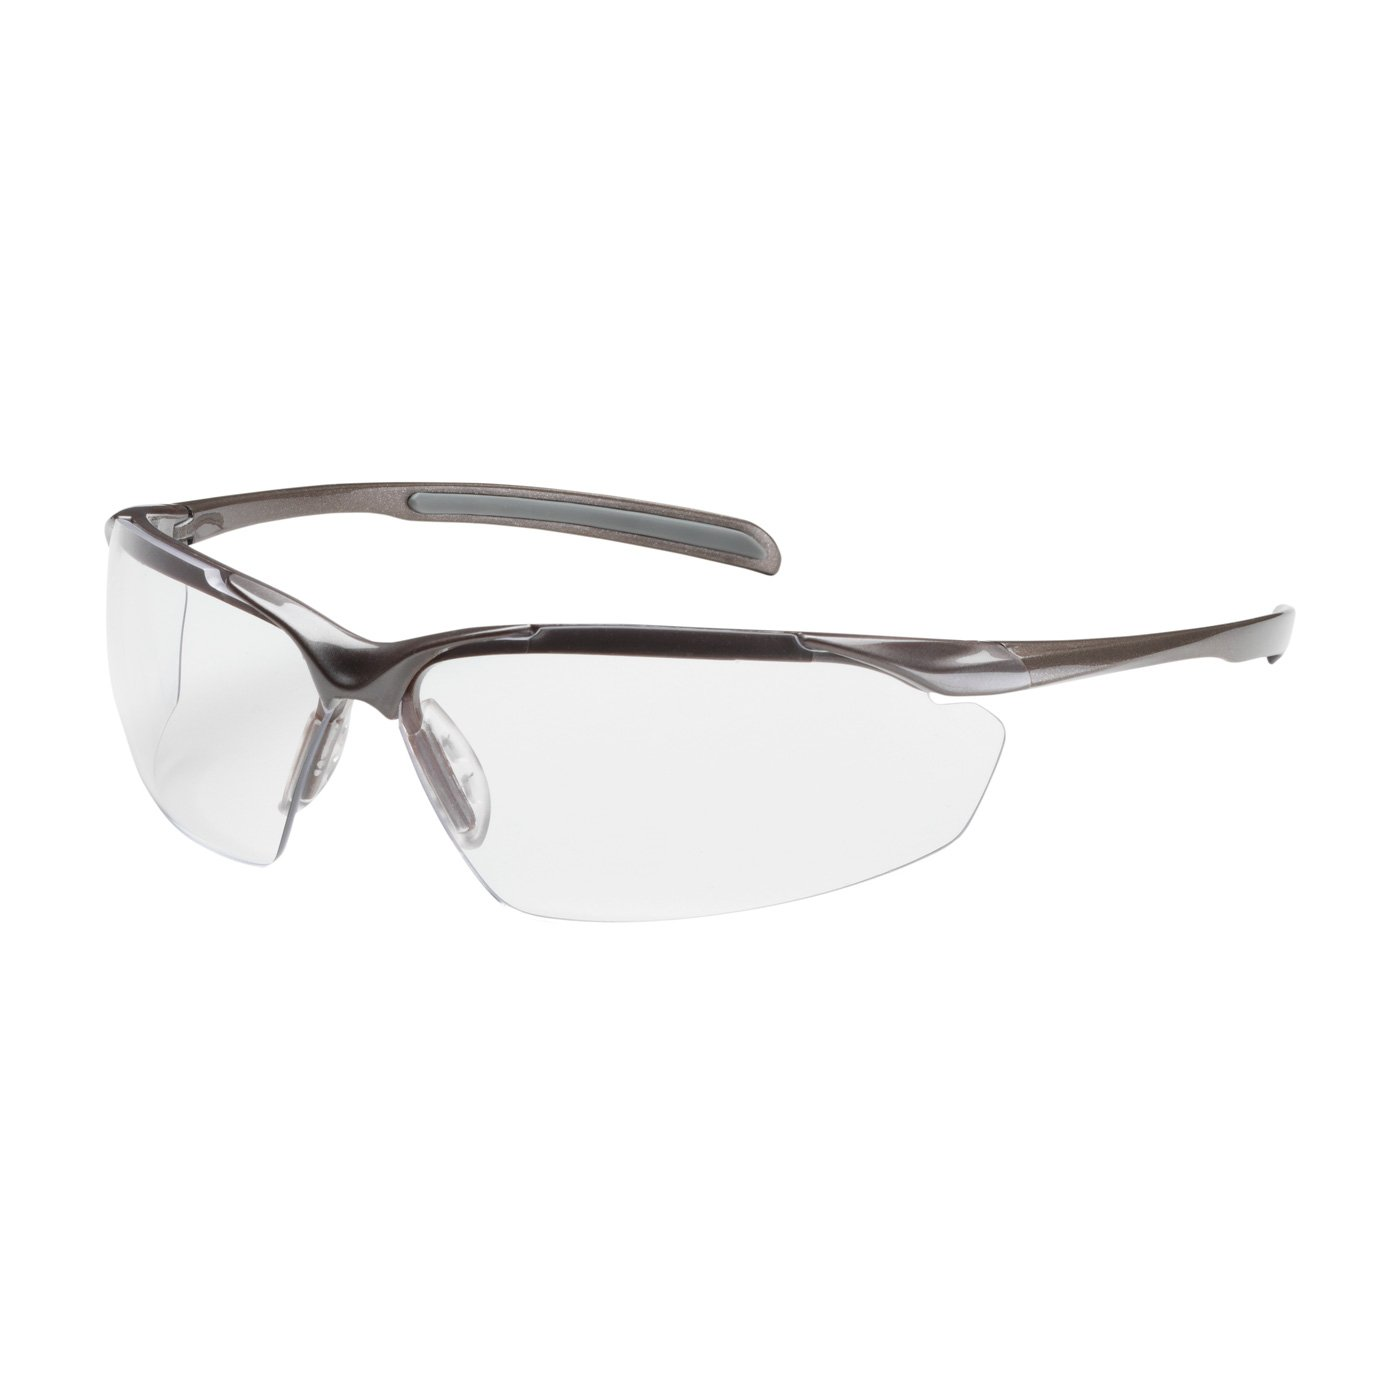 Commander 250-33-1020 Semi-Rimless Safety Glasses with Gloss Bronze Frame, Clear Lens and Anti-Scratch/Fogless Coating by Unknown